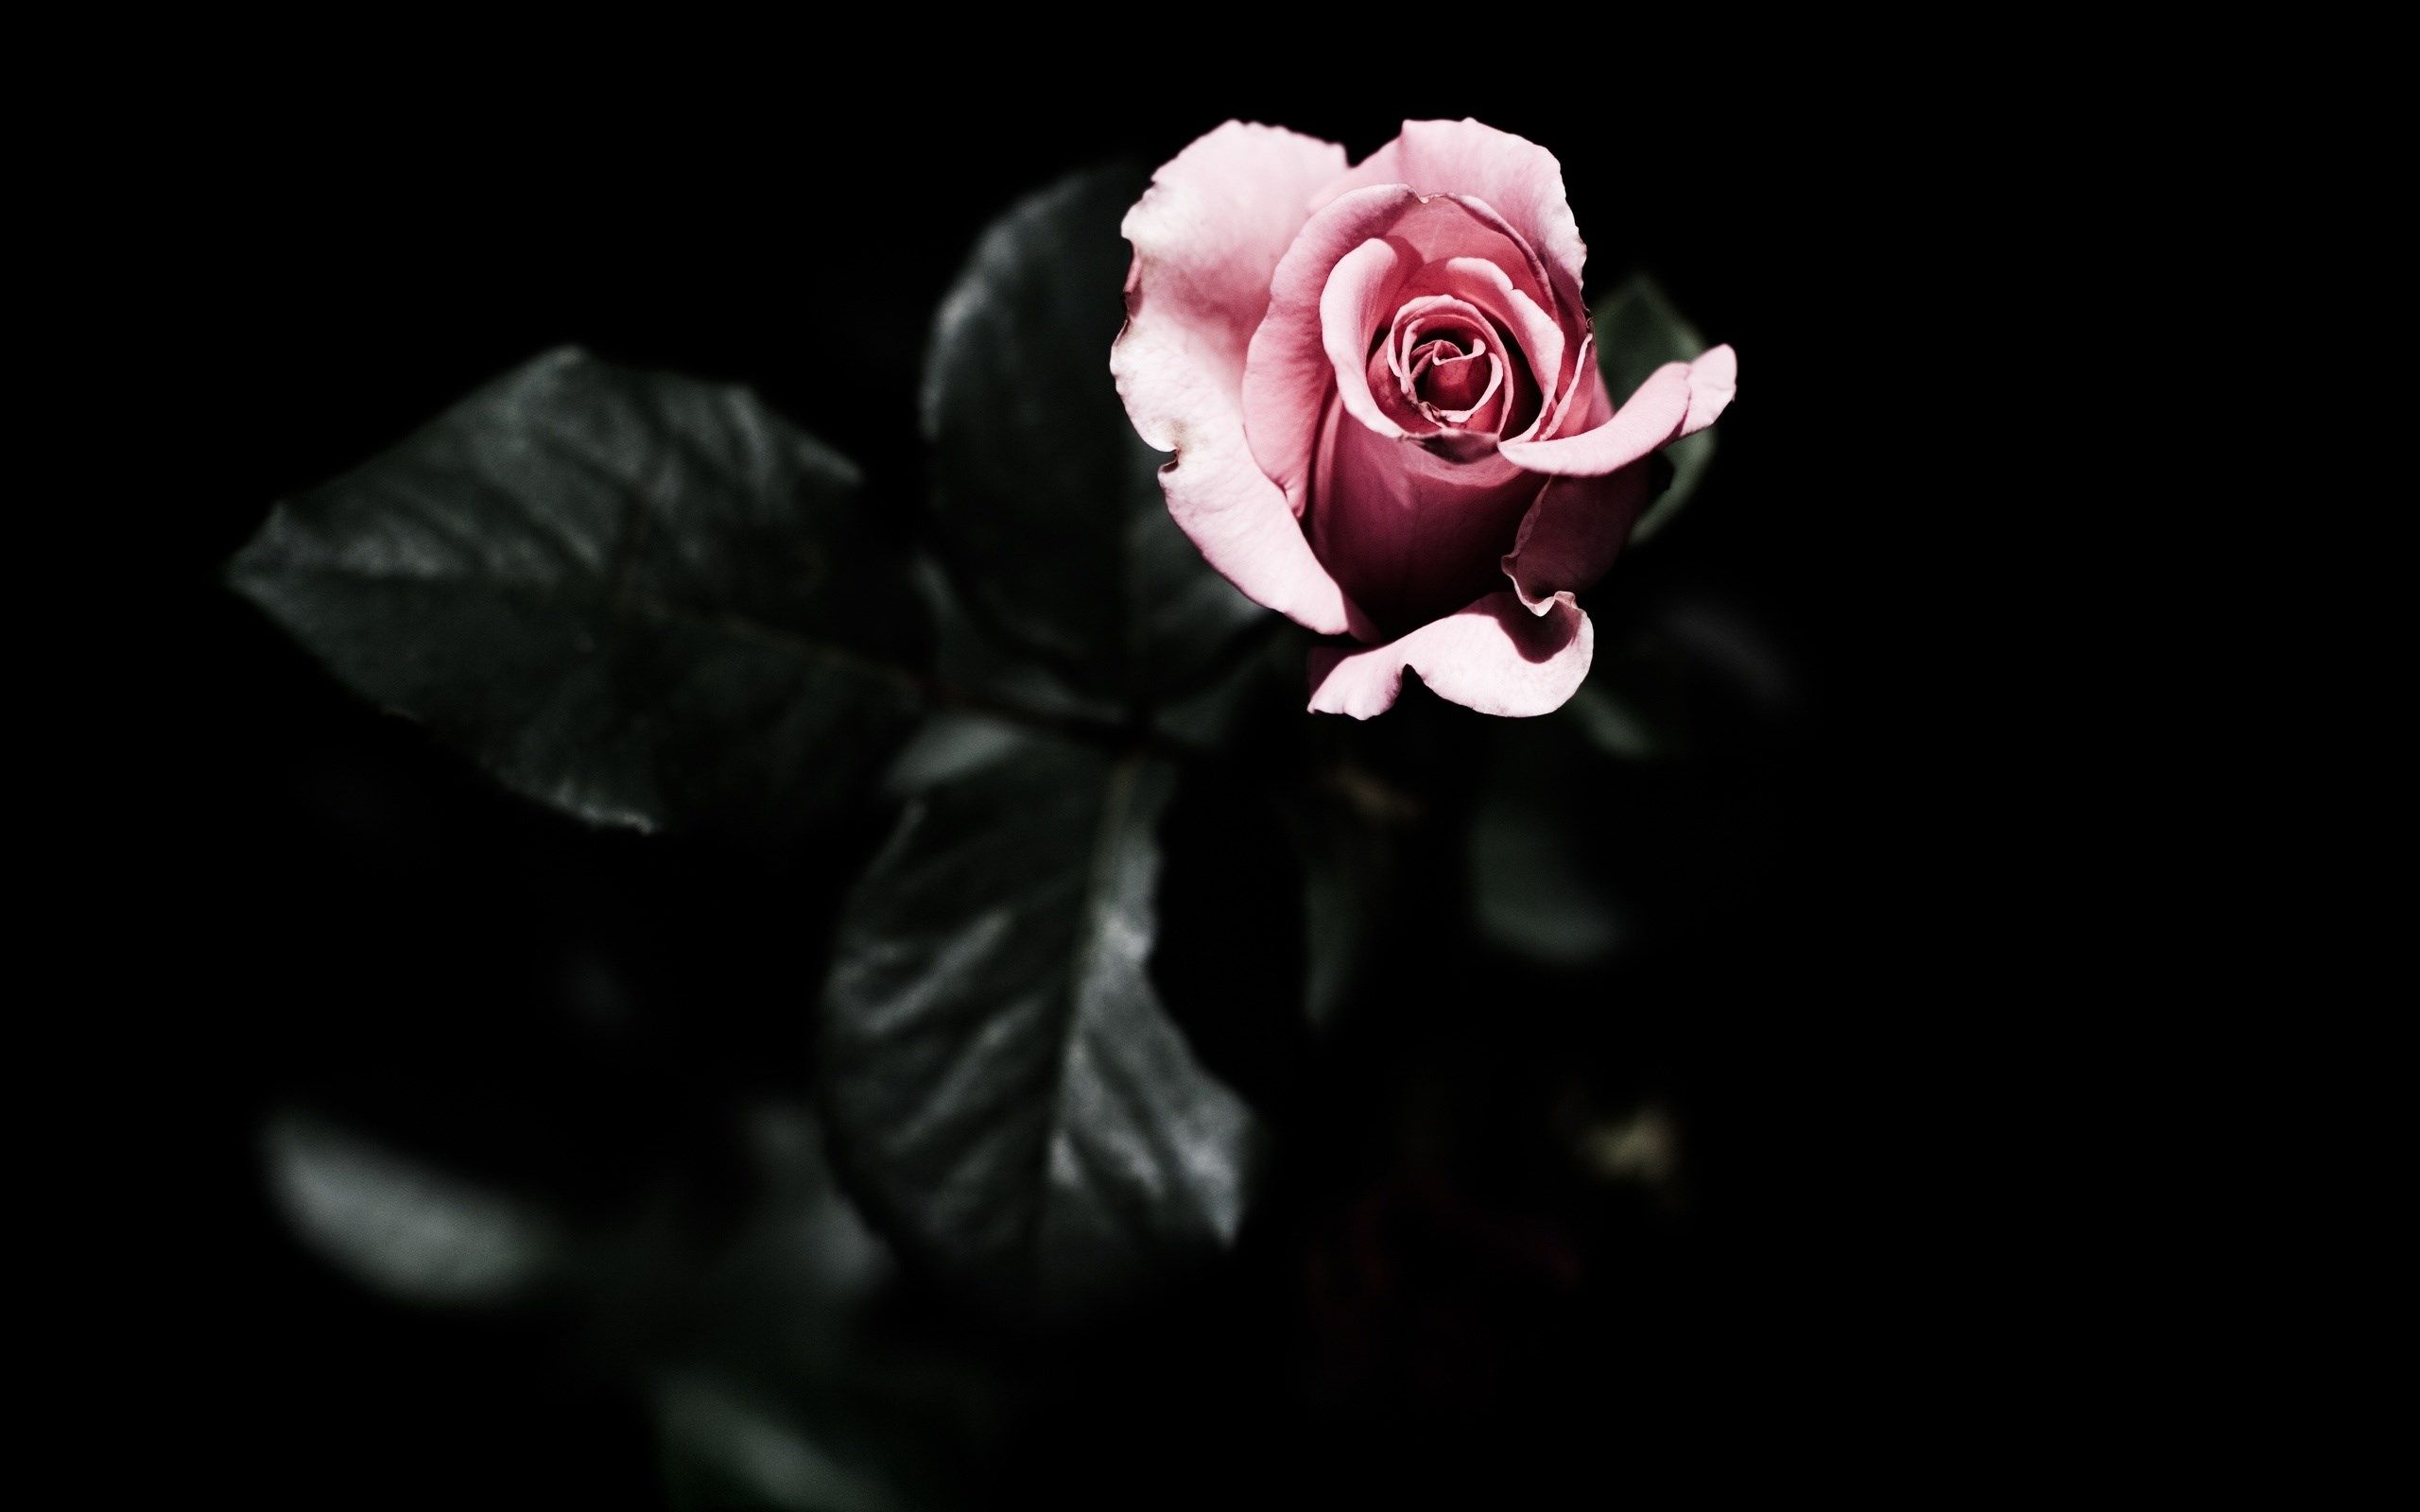 Rose Pink Dark Background Leaves Hd Wallpaper By BillGate